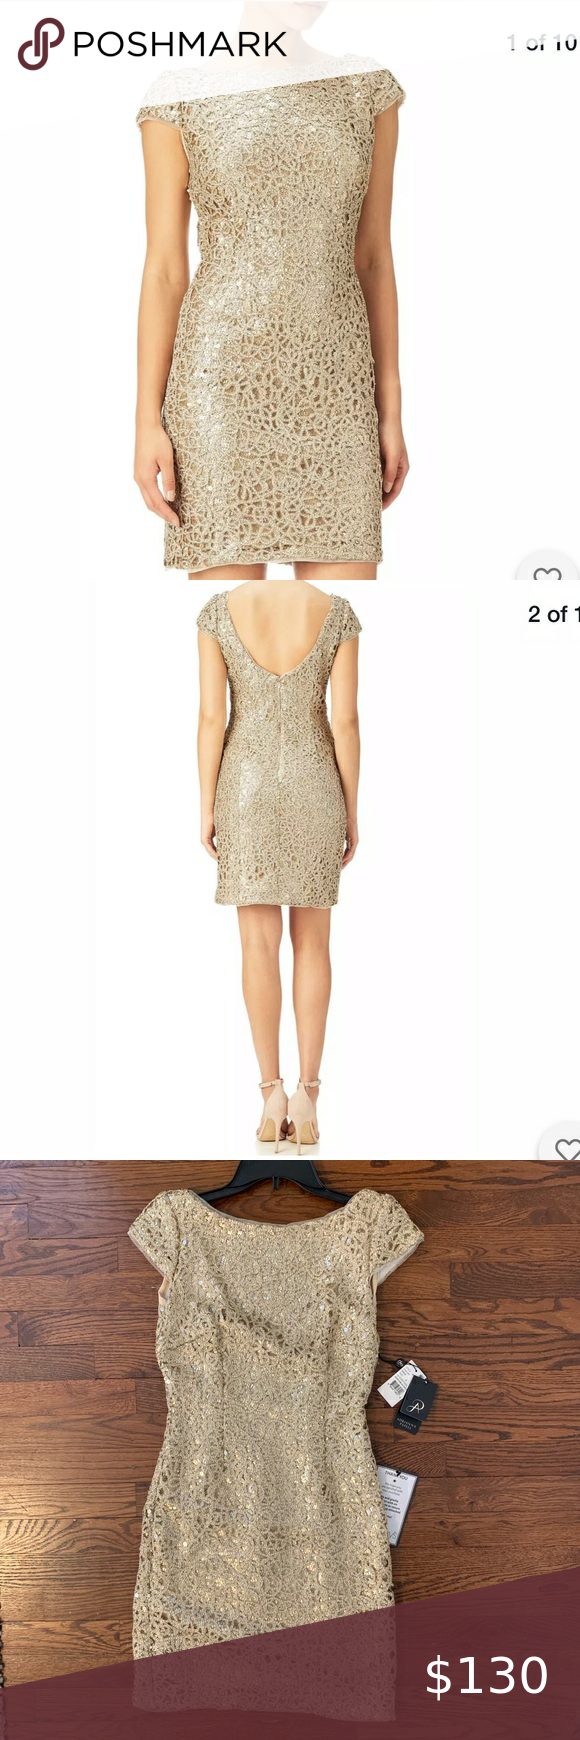 Adrianna Papell Sequin Gold Shift Dress Size 2 Shift Dress Dresses Colorful Dresses [ 1740 x 580 Pixel ]